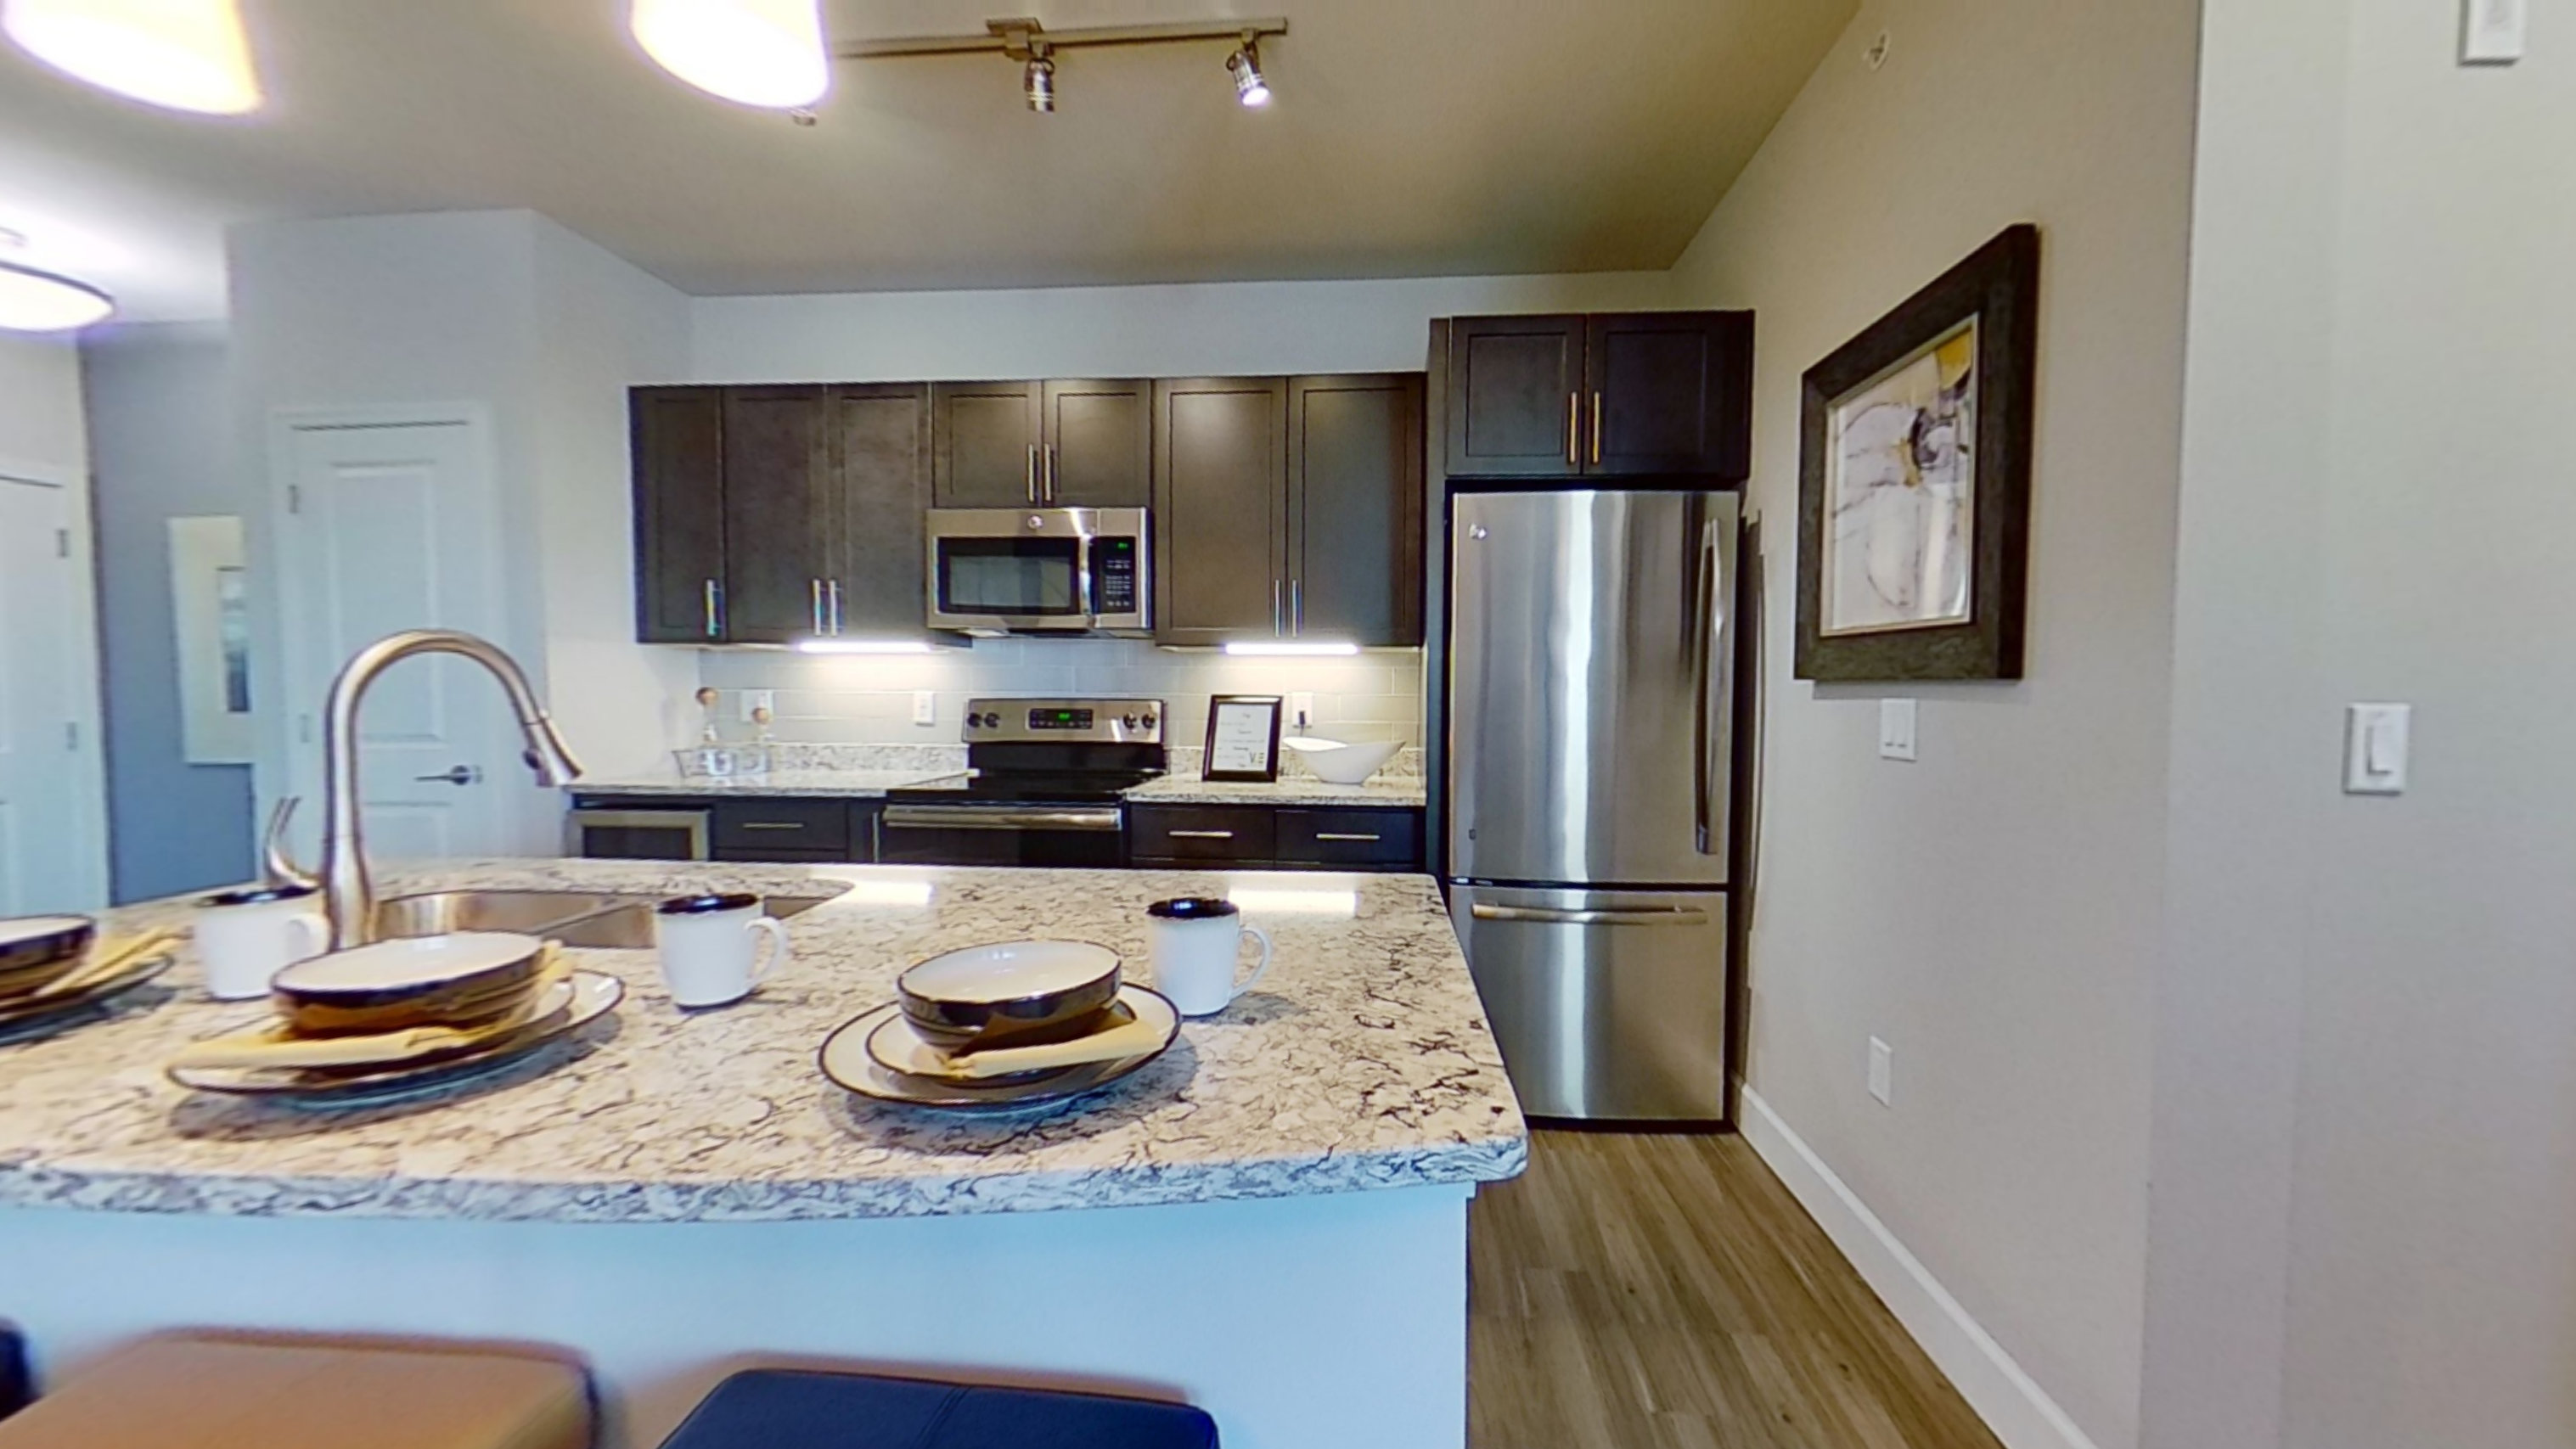 A3 Unit Kitchen at the Vue at Creve Coeur Apartments in Creve Coeur, MO